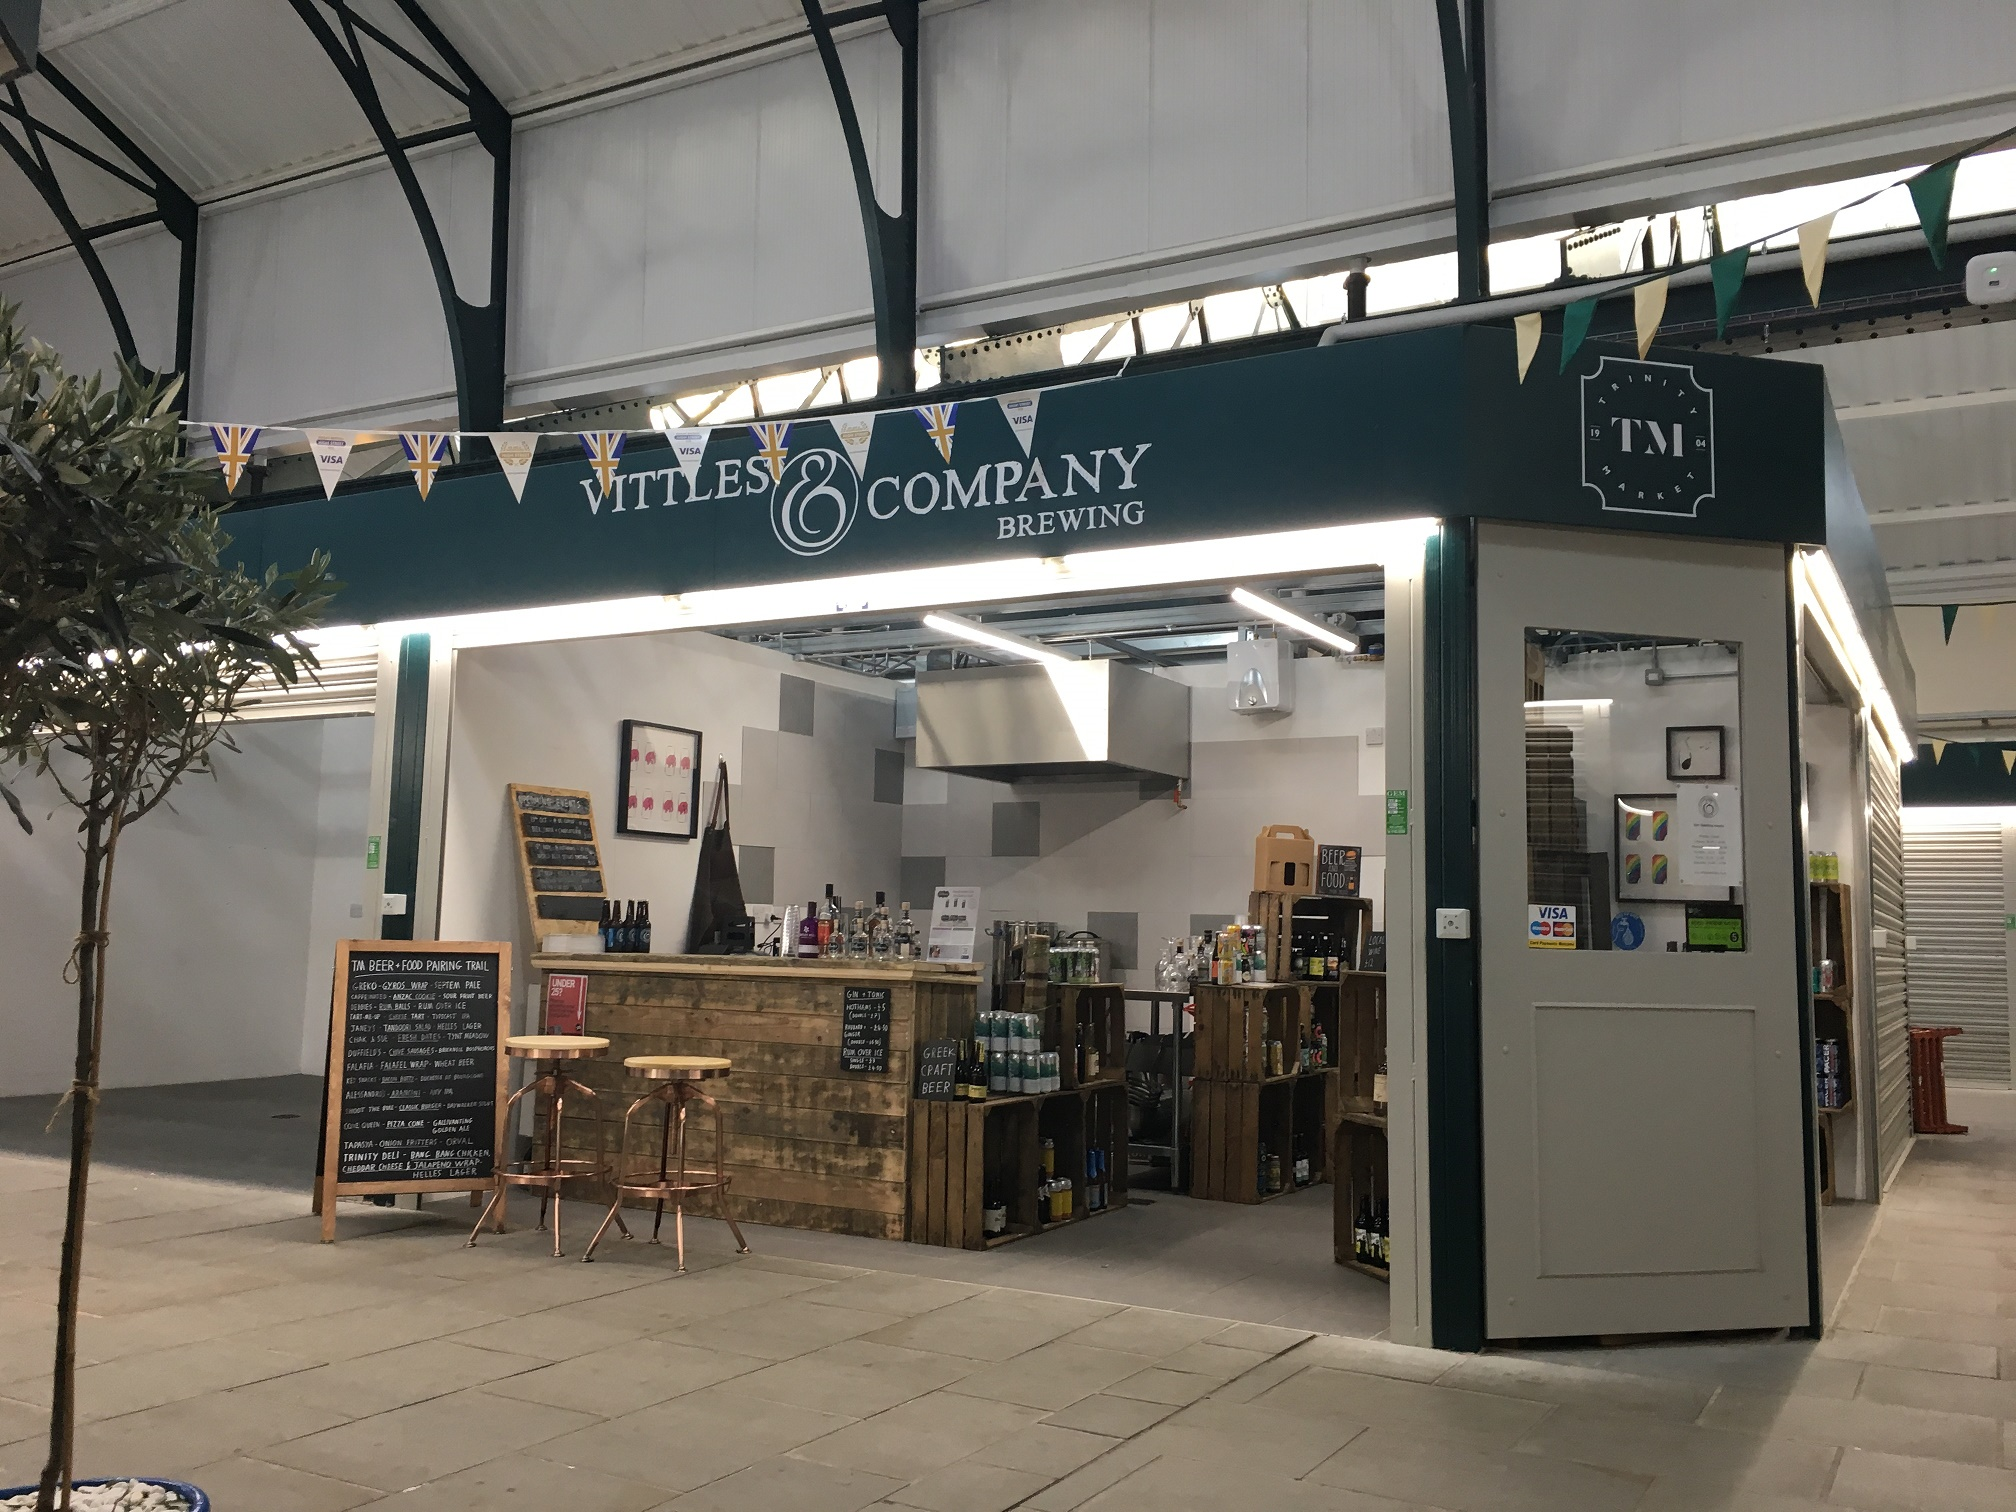 The micro-brewery brews and sells its beer in Trinity Market.